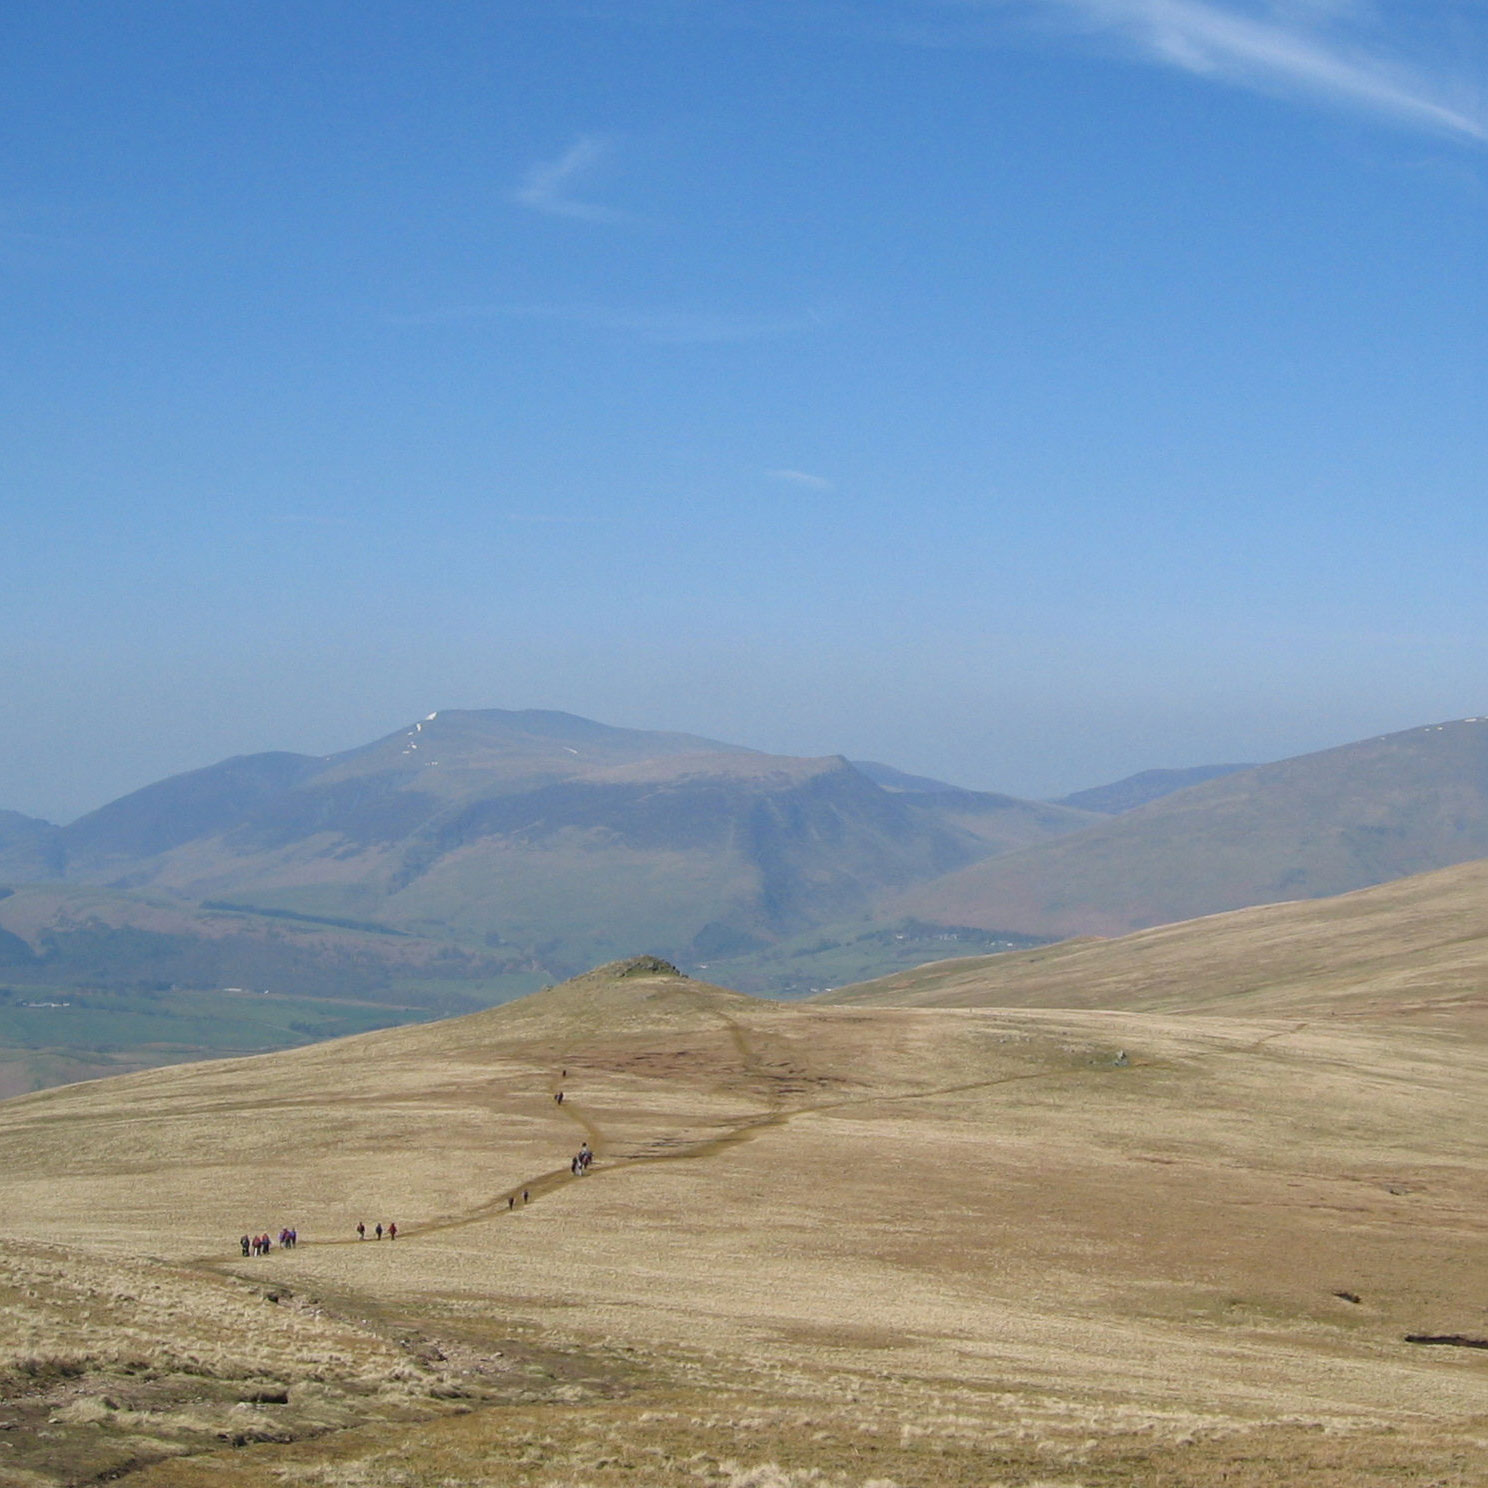 Image for article This Month's Walk: Clough Head and Stybarrow Dodd